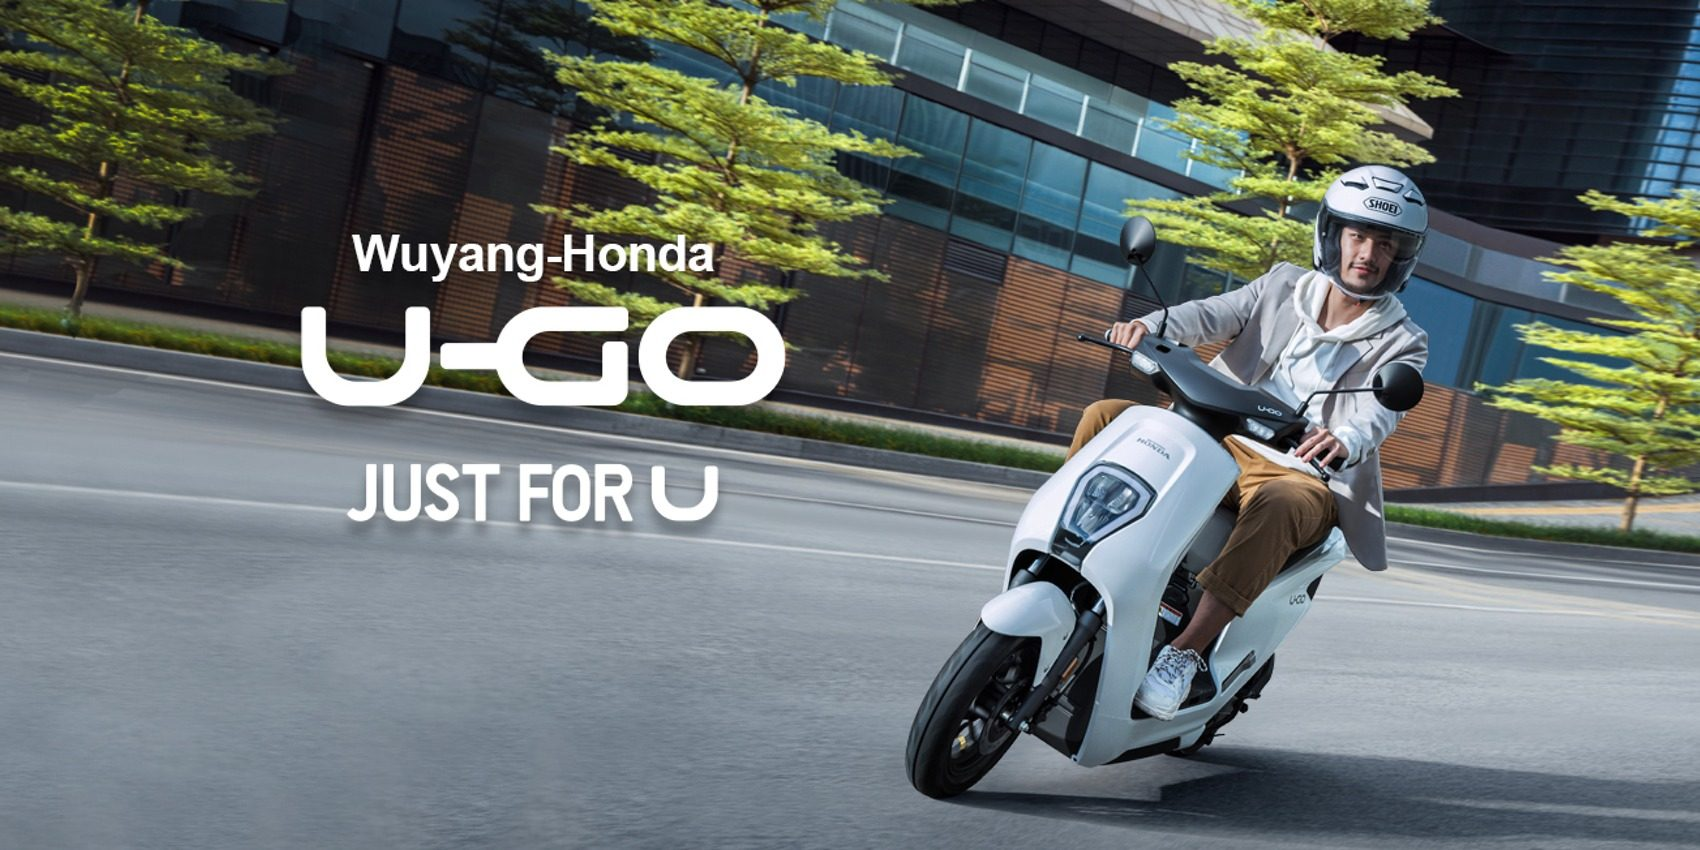 Honda Launches New U-GO Electric Scooter In China